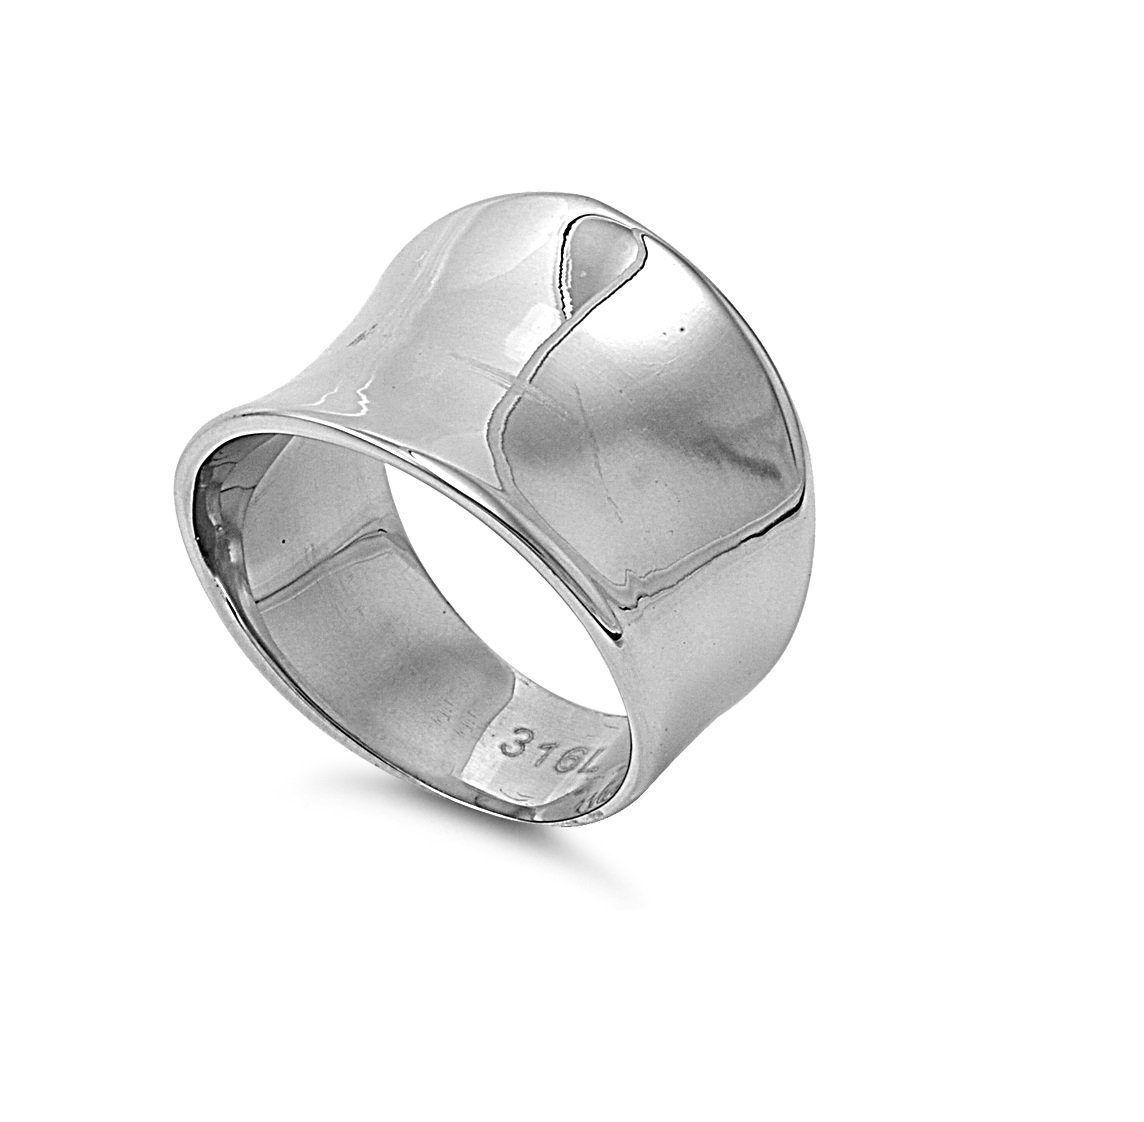 Stainless Steel Plain Simple Concave Ring Size 8